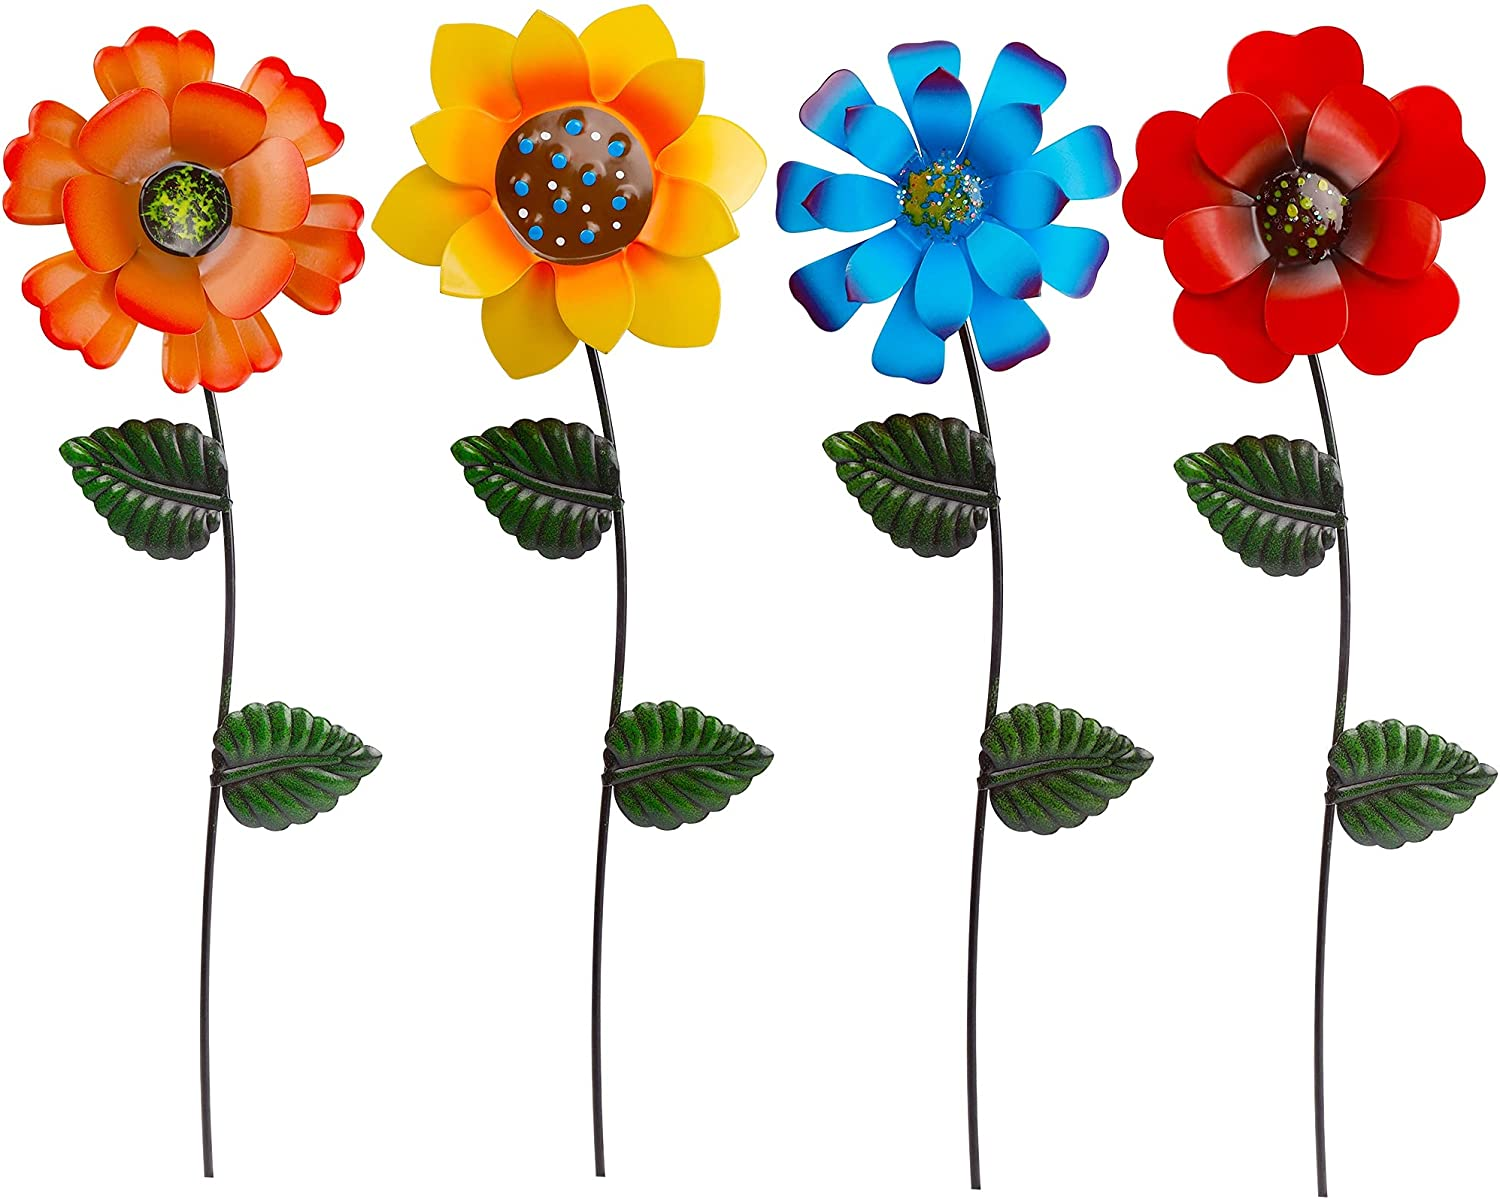 Juegoal 4 Pack Flower Garden Stakes Decor, Outdoor Metal Colorful Sunflowers Daisy Shaking Head Yard Art, Rust Proof Metal Flower Stick, Indoor Outdoor Pathway Patio Lawn Decorations